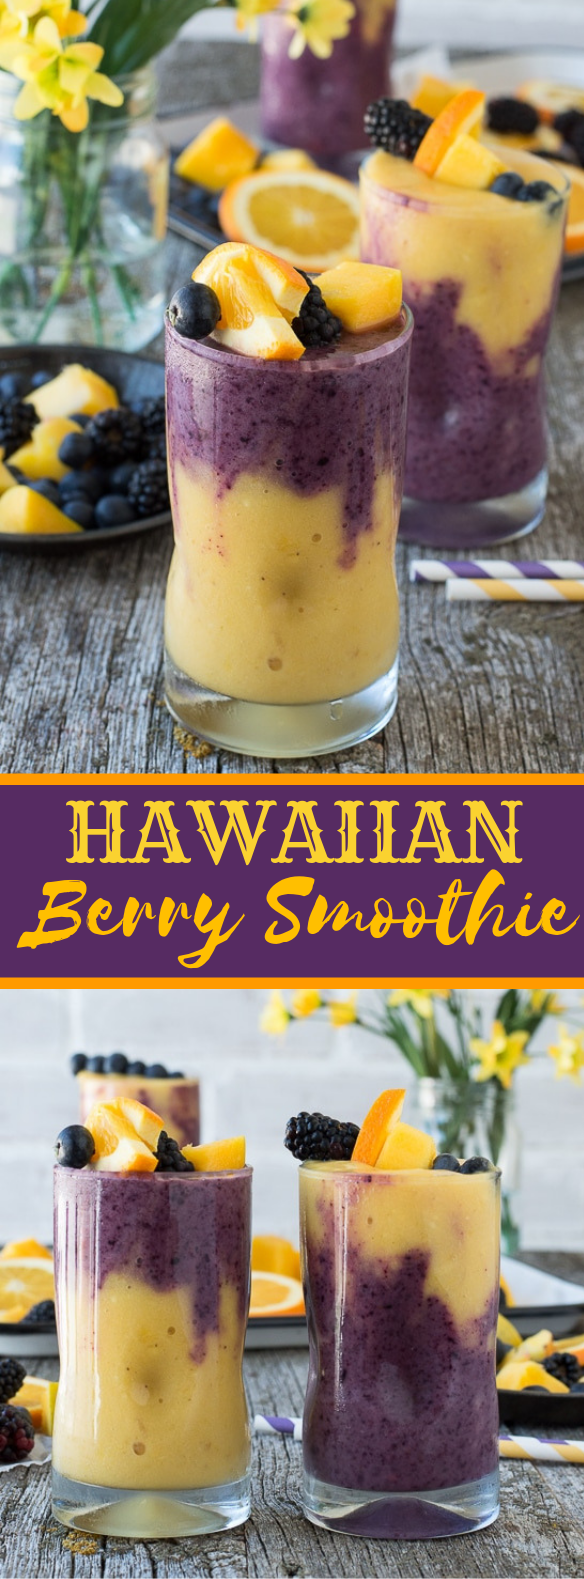 Hawaiian Berry Smoothie #drinks #celebratedrink